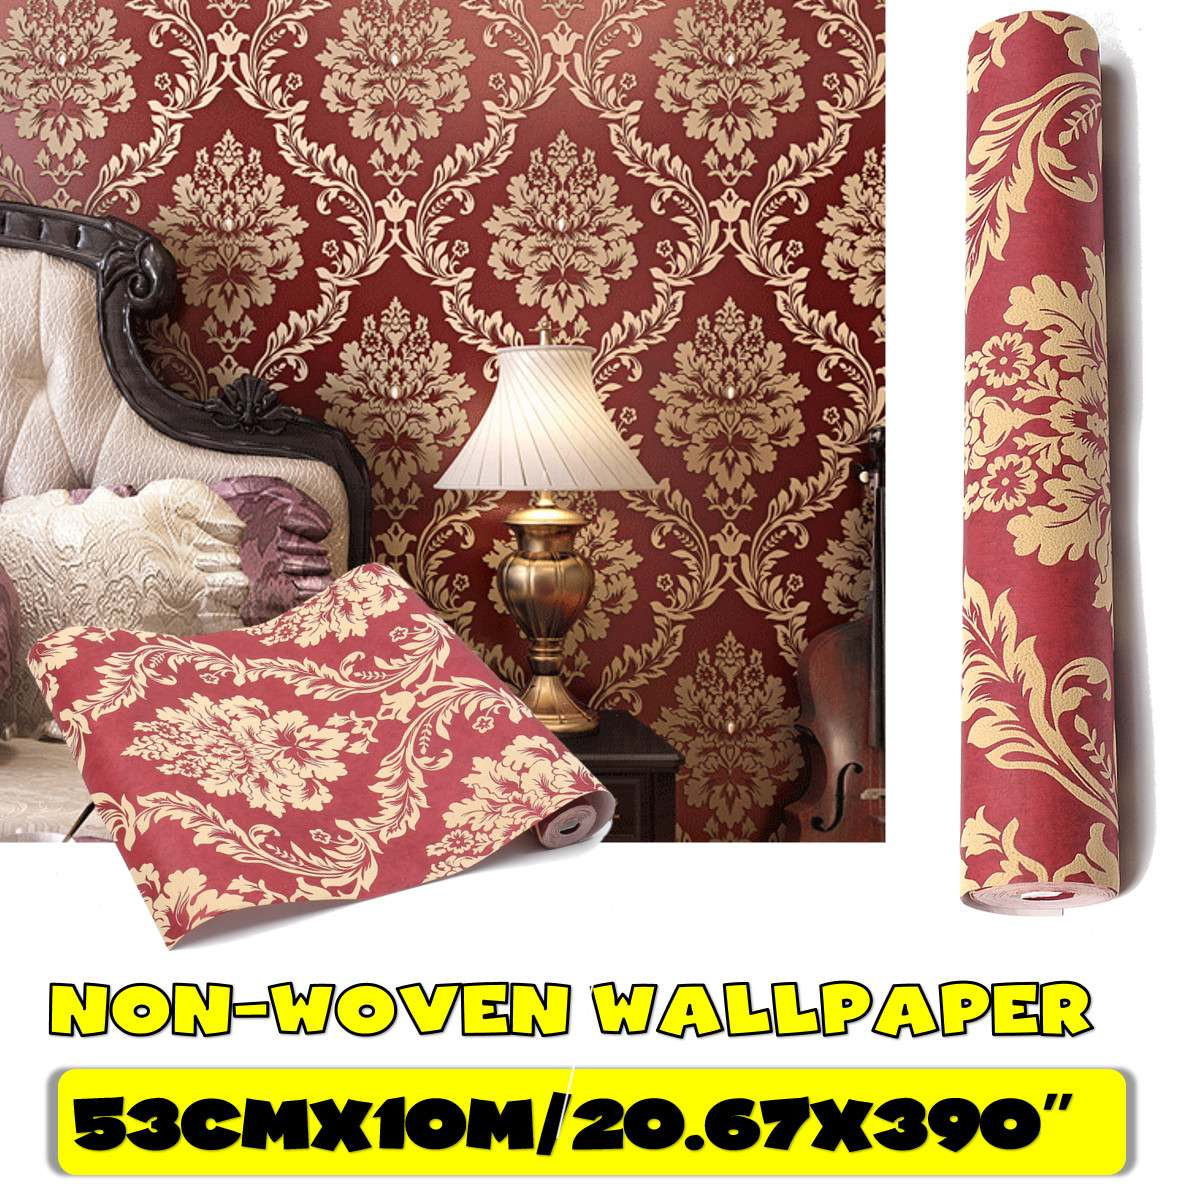 53cm*10m 3D Red Wine European Style Non-woven Wallpaper Classic Wall Paper Roll Wallcovering Luxury Wallpaper